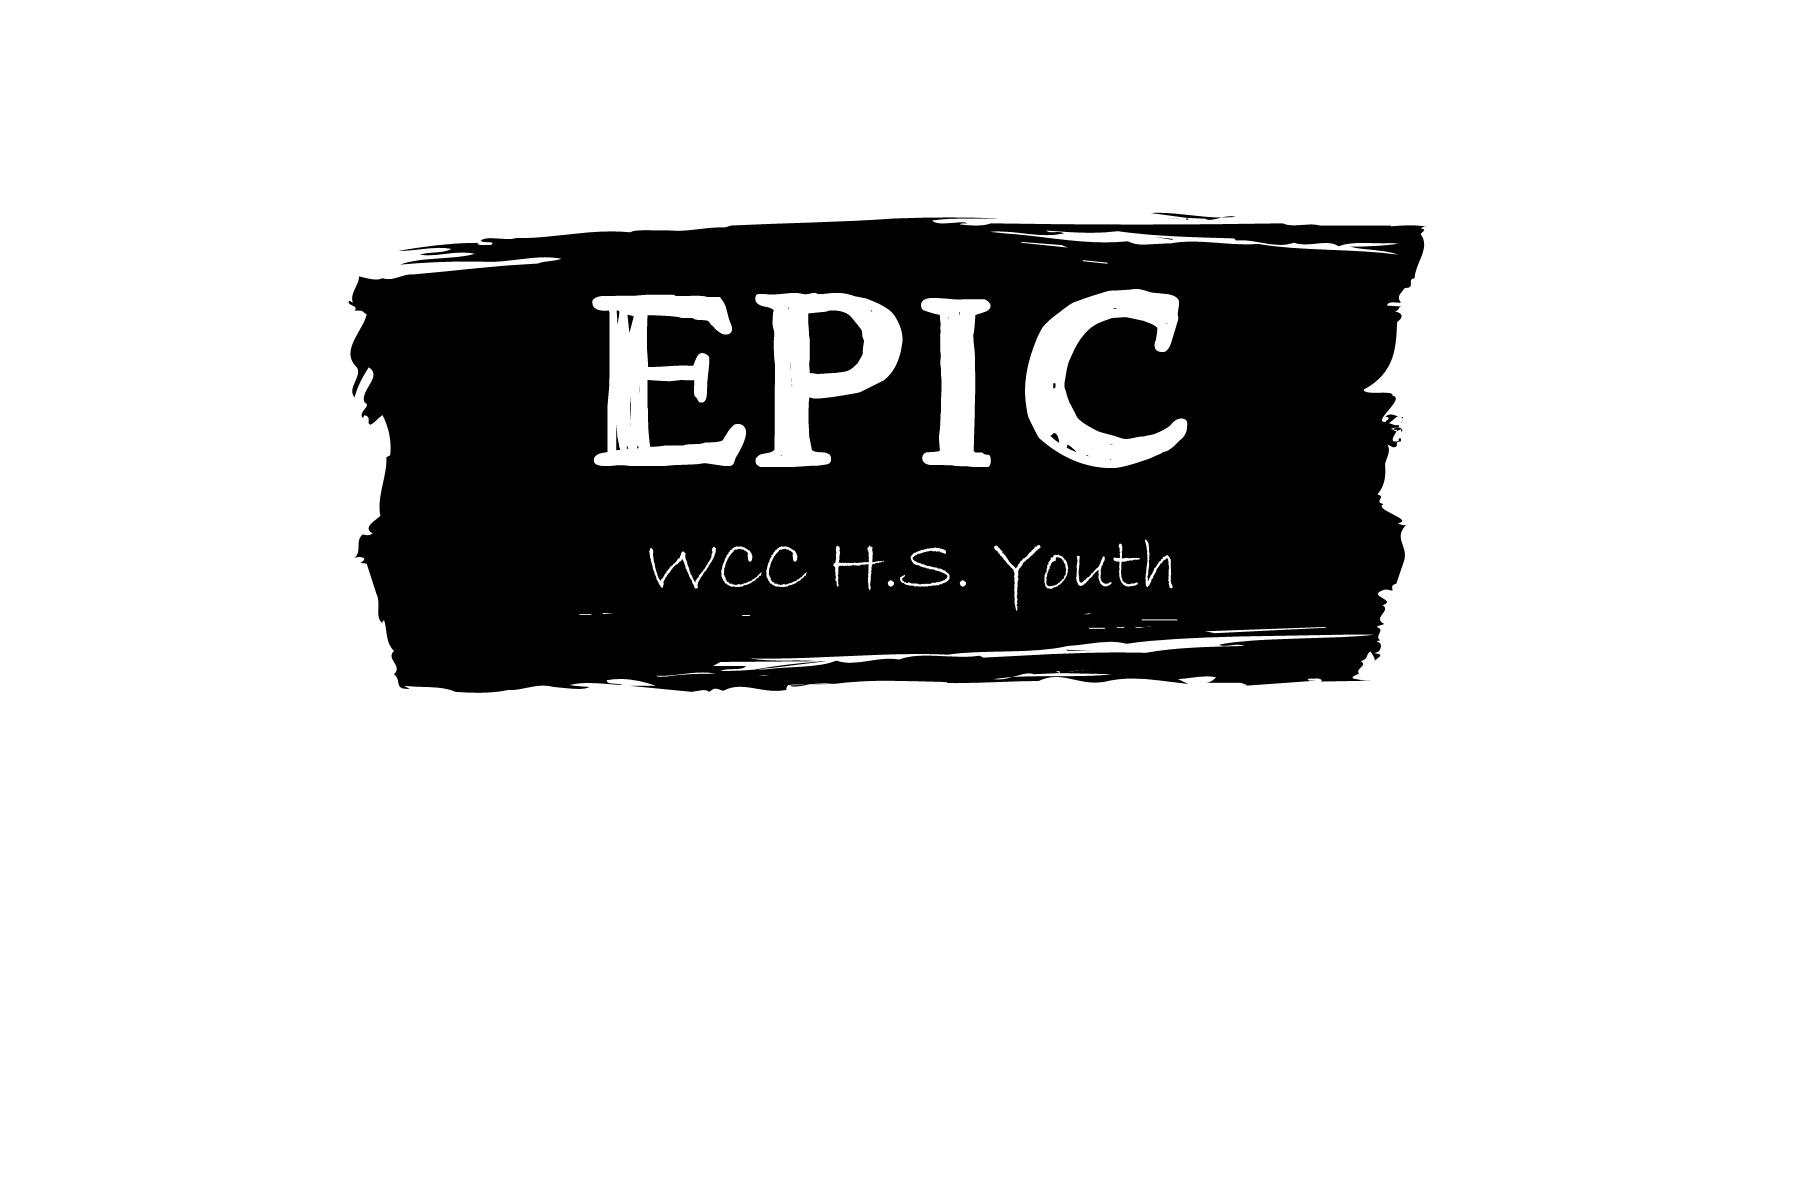 Epic High School Logo - Epic youth logo